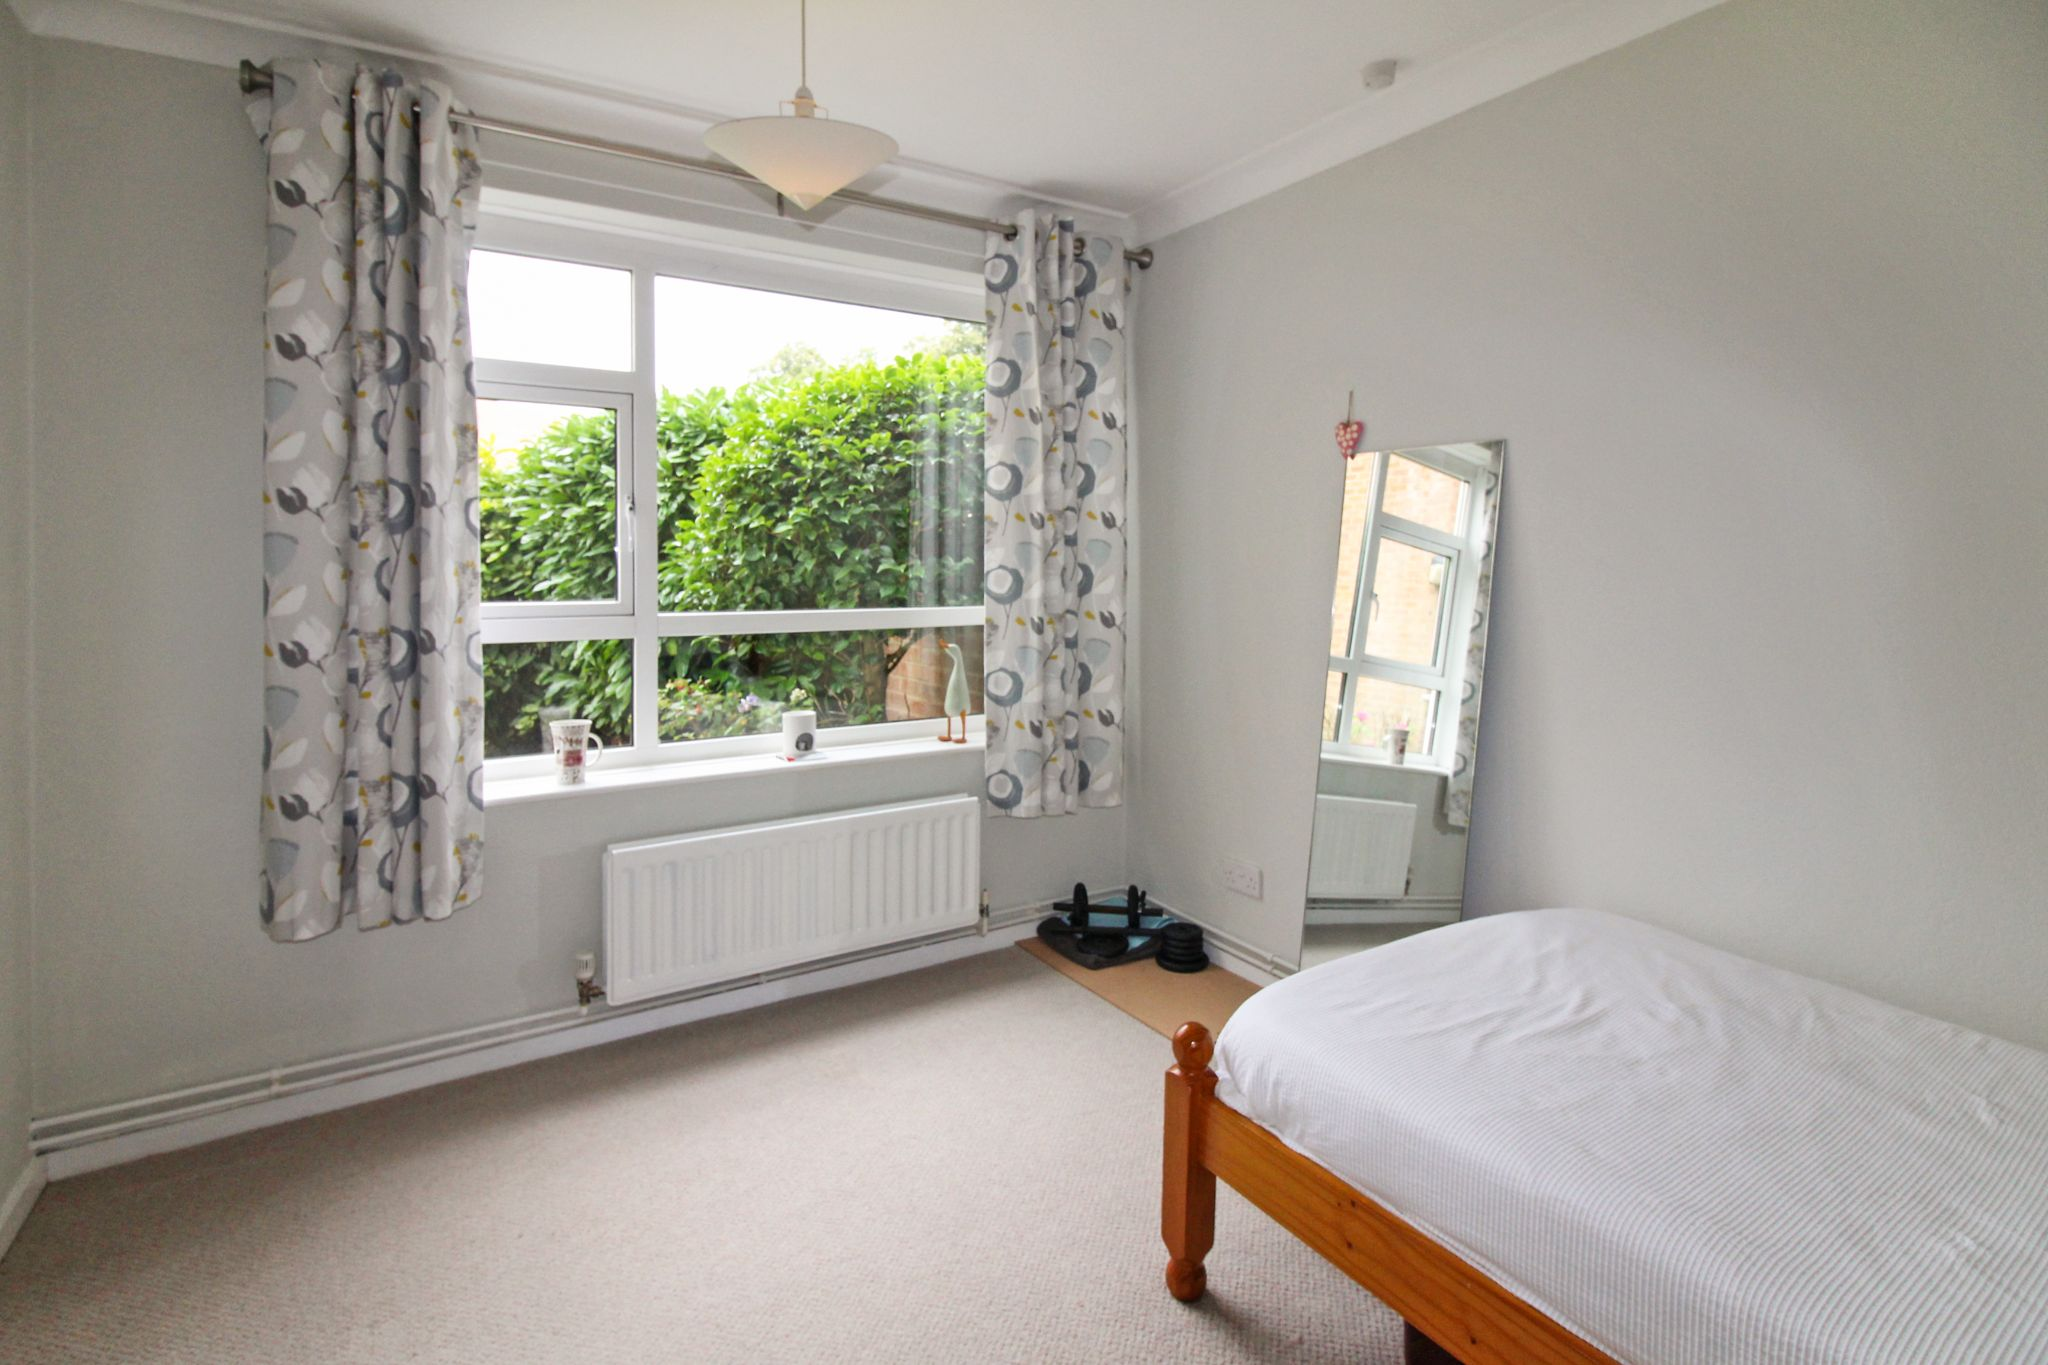 2 bedroom ground floor flat/apartment For Sale in Solihull - Photograph 8.